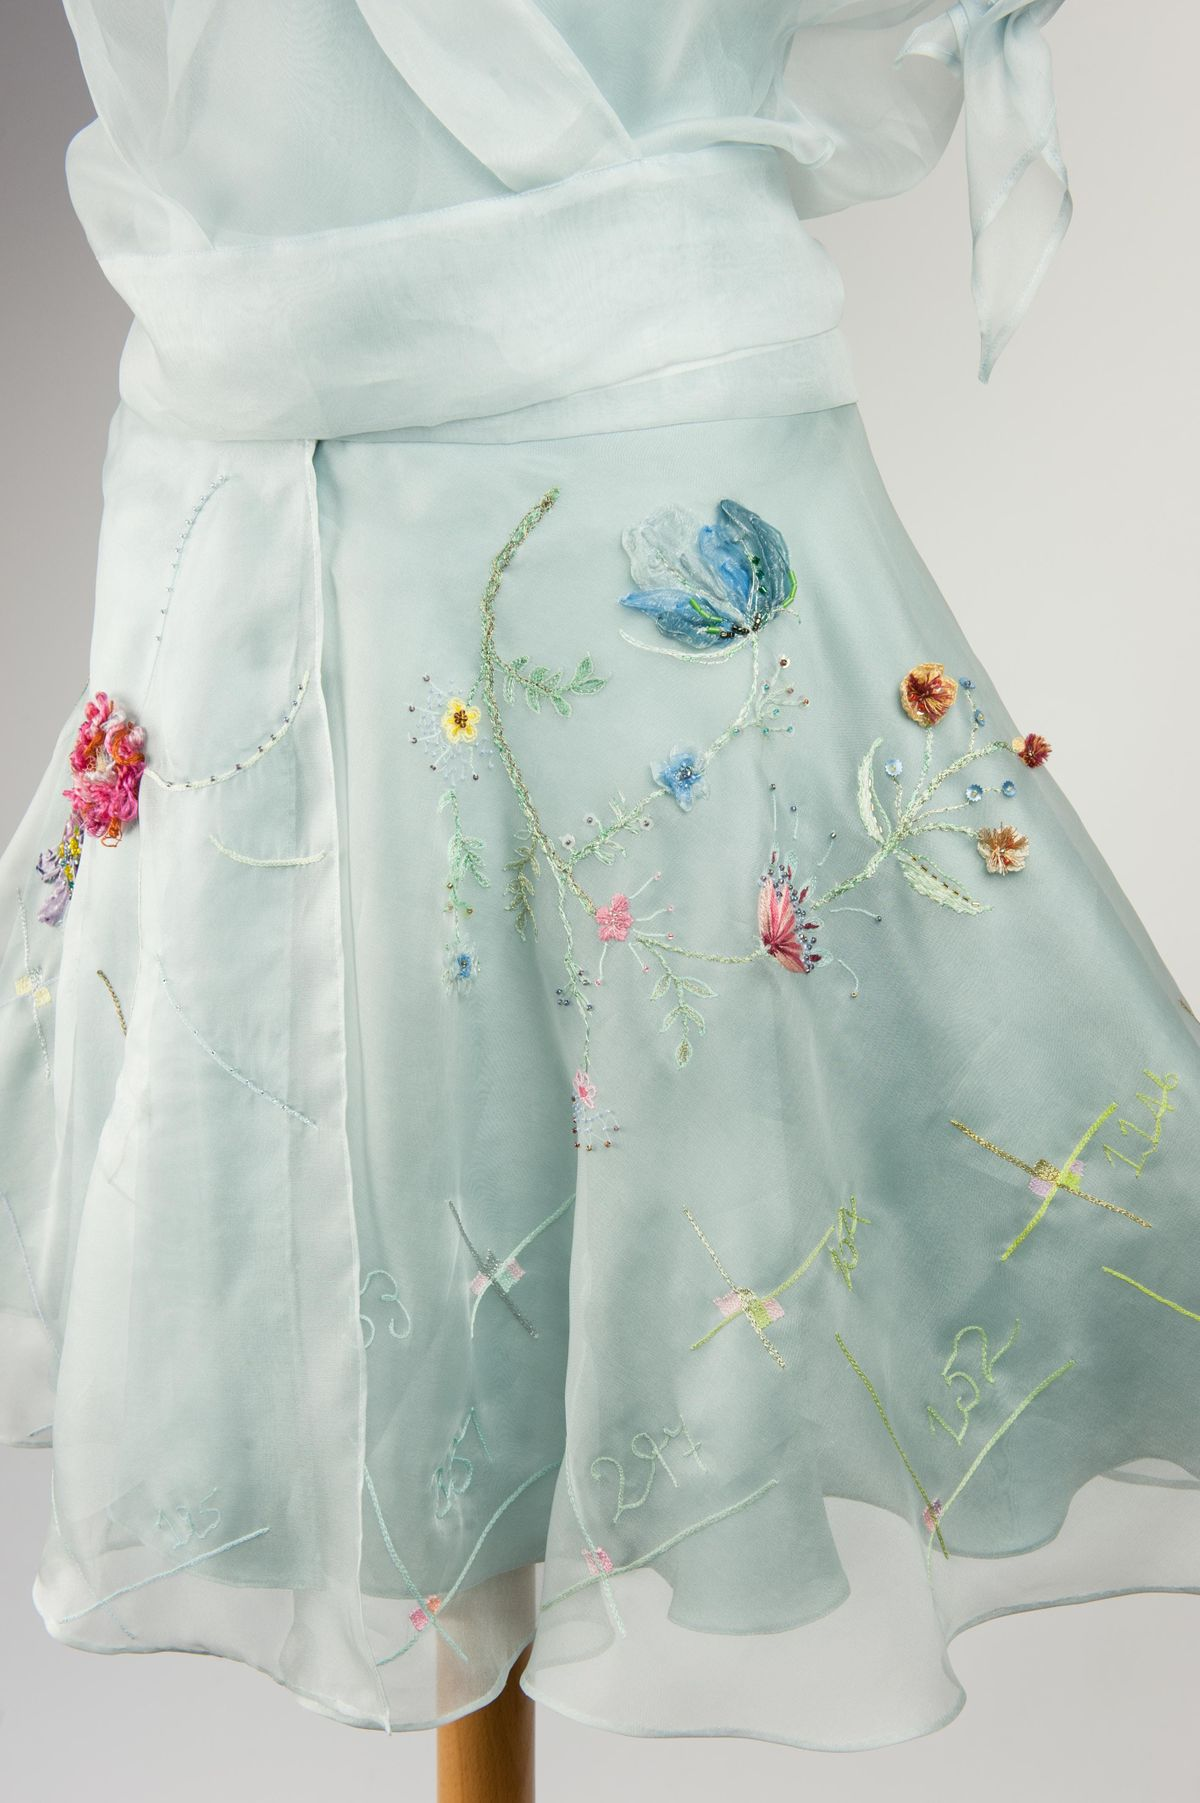 Artist Talk - Corsetry and Couture by Sara OHara